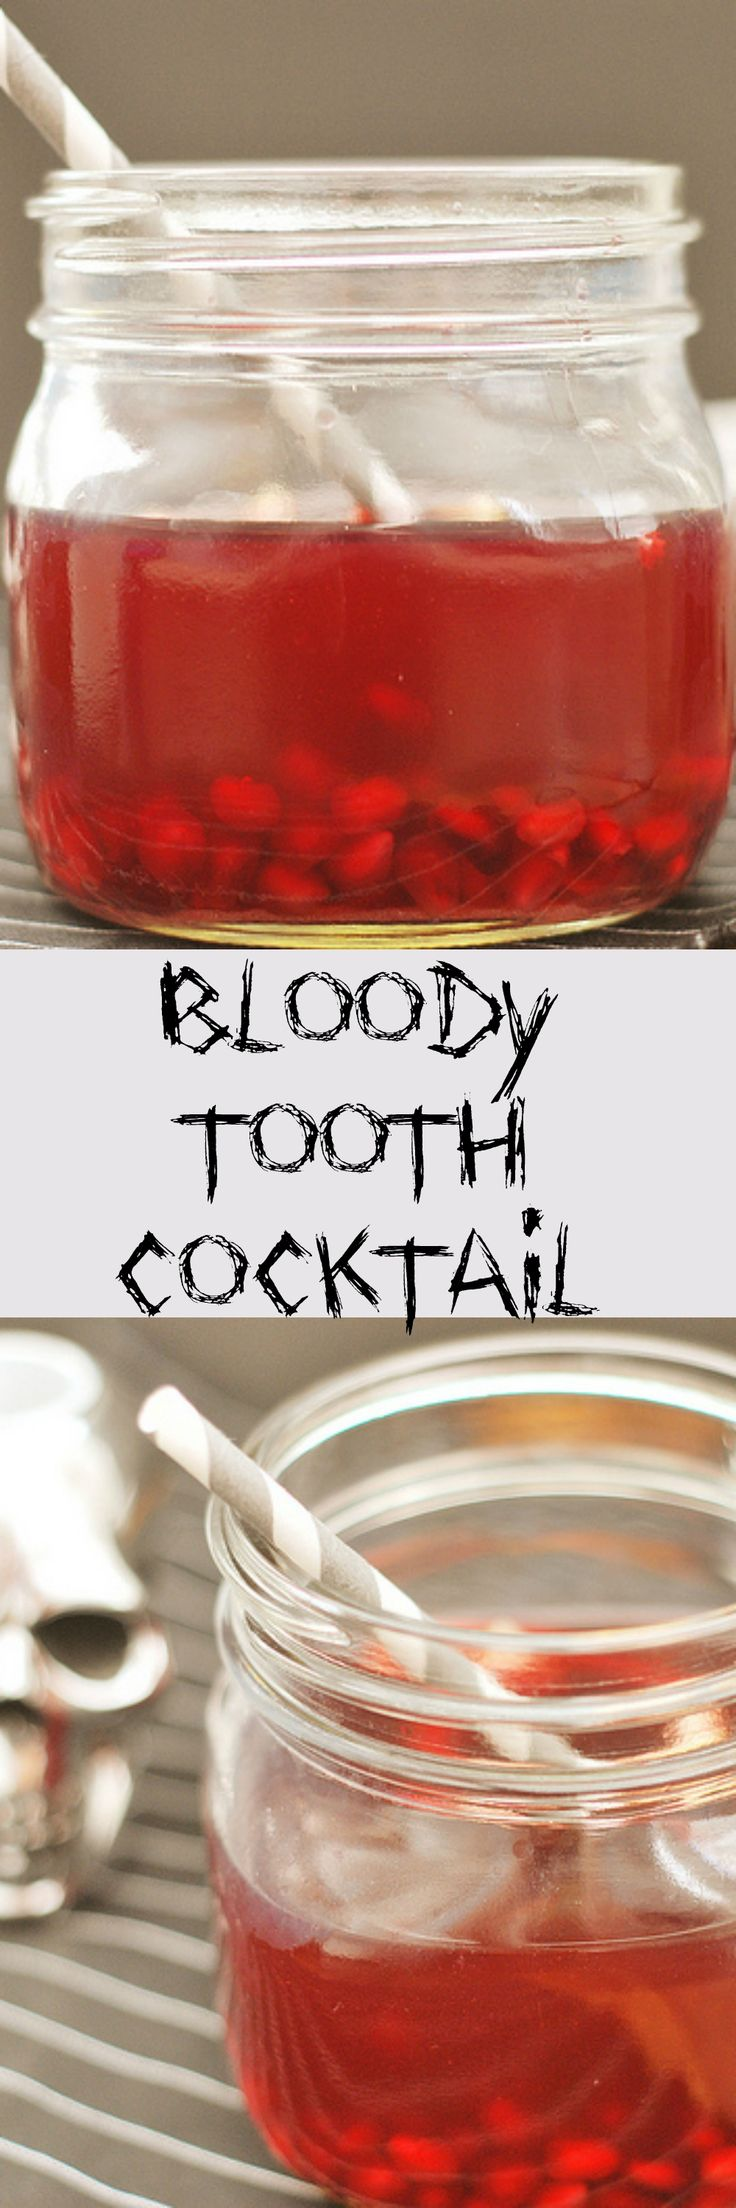 Bloody Tooth Cocktail - so fun for a Halloween party! Pomegranate seeds look just like bloody teeth in here!